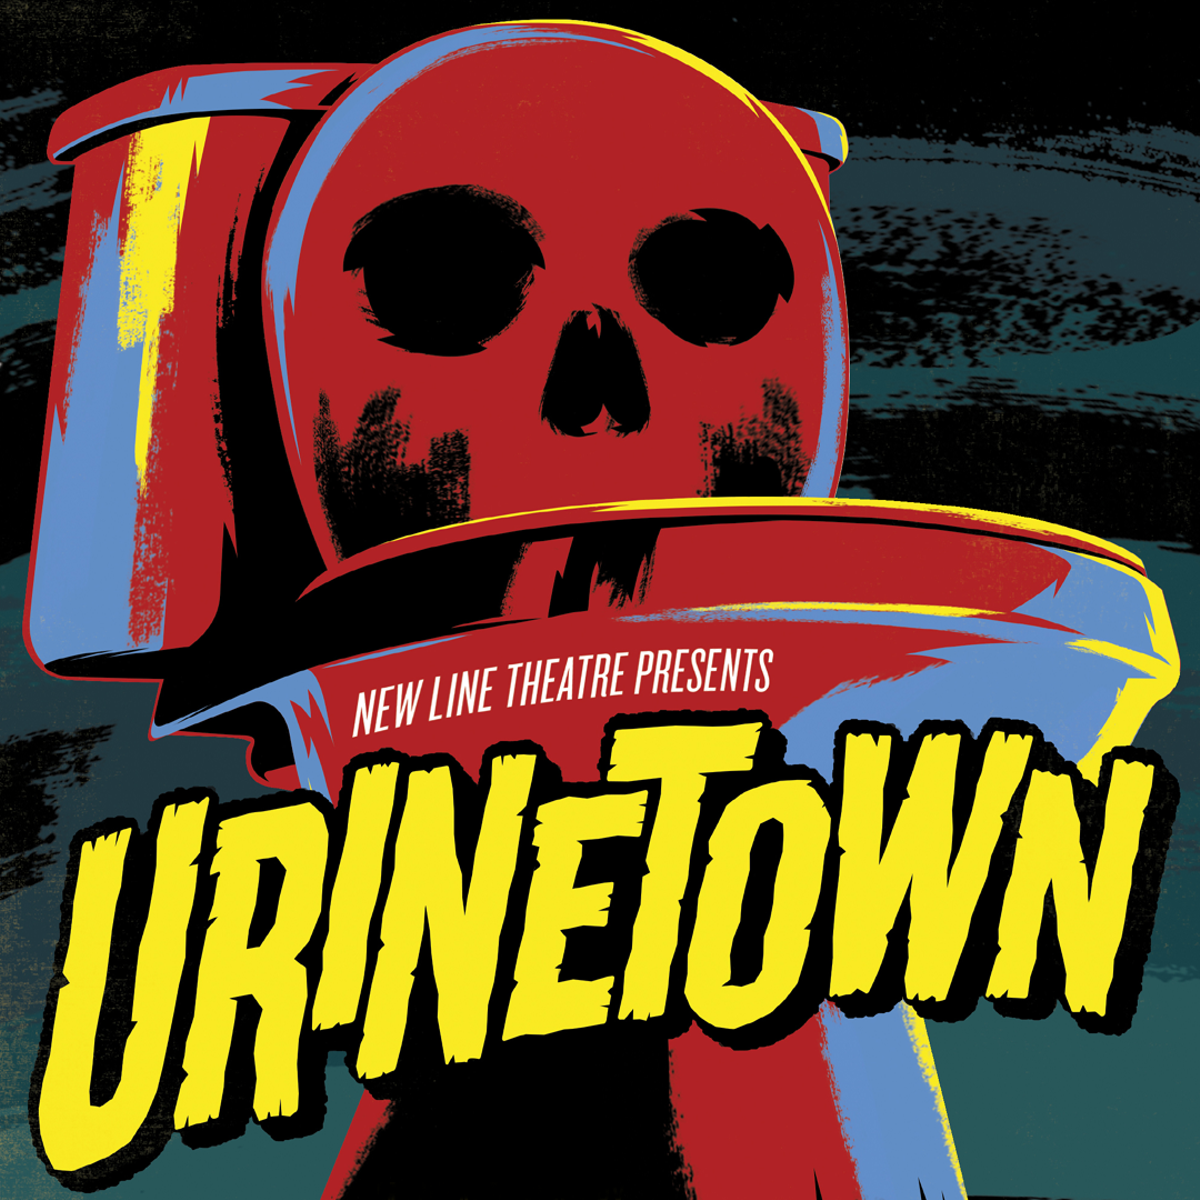 urinetown-1080x1080.png